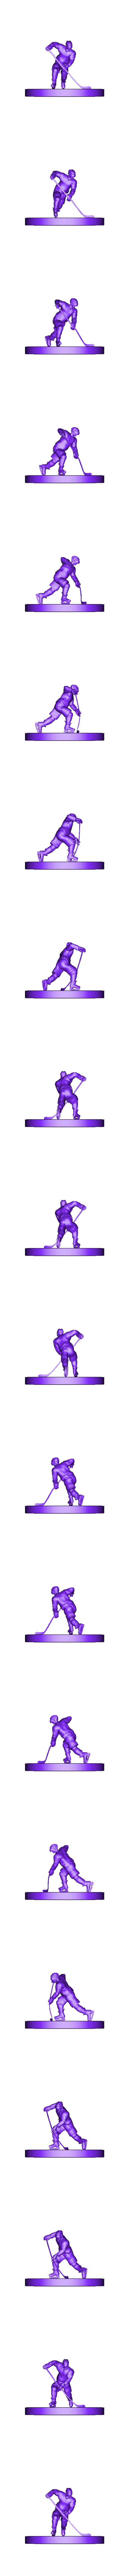 hockeywrister.obj Download OBJ file ULTIMATE HOCKEY POSES PACK MODEL NO TEXTURE 3D Model Collection • 3D printing template, NightCreativity